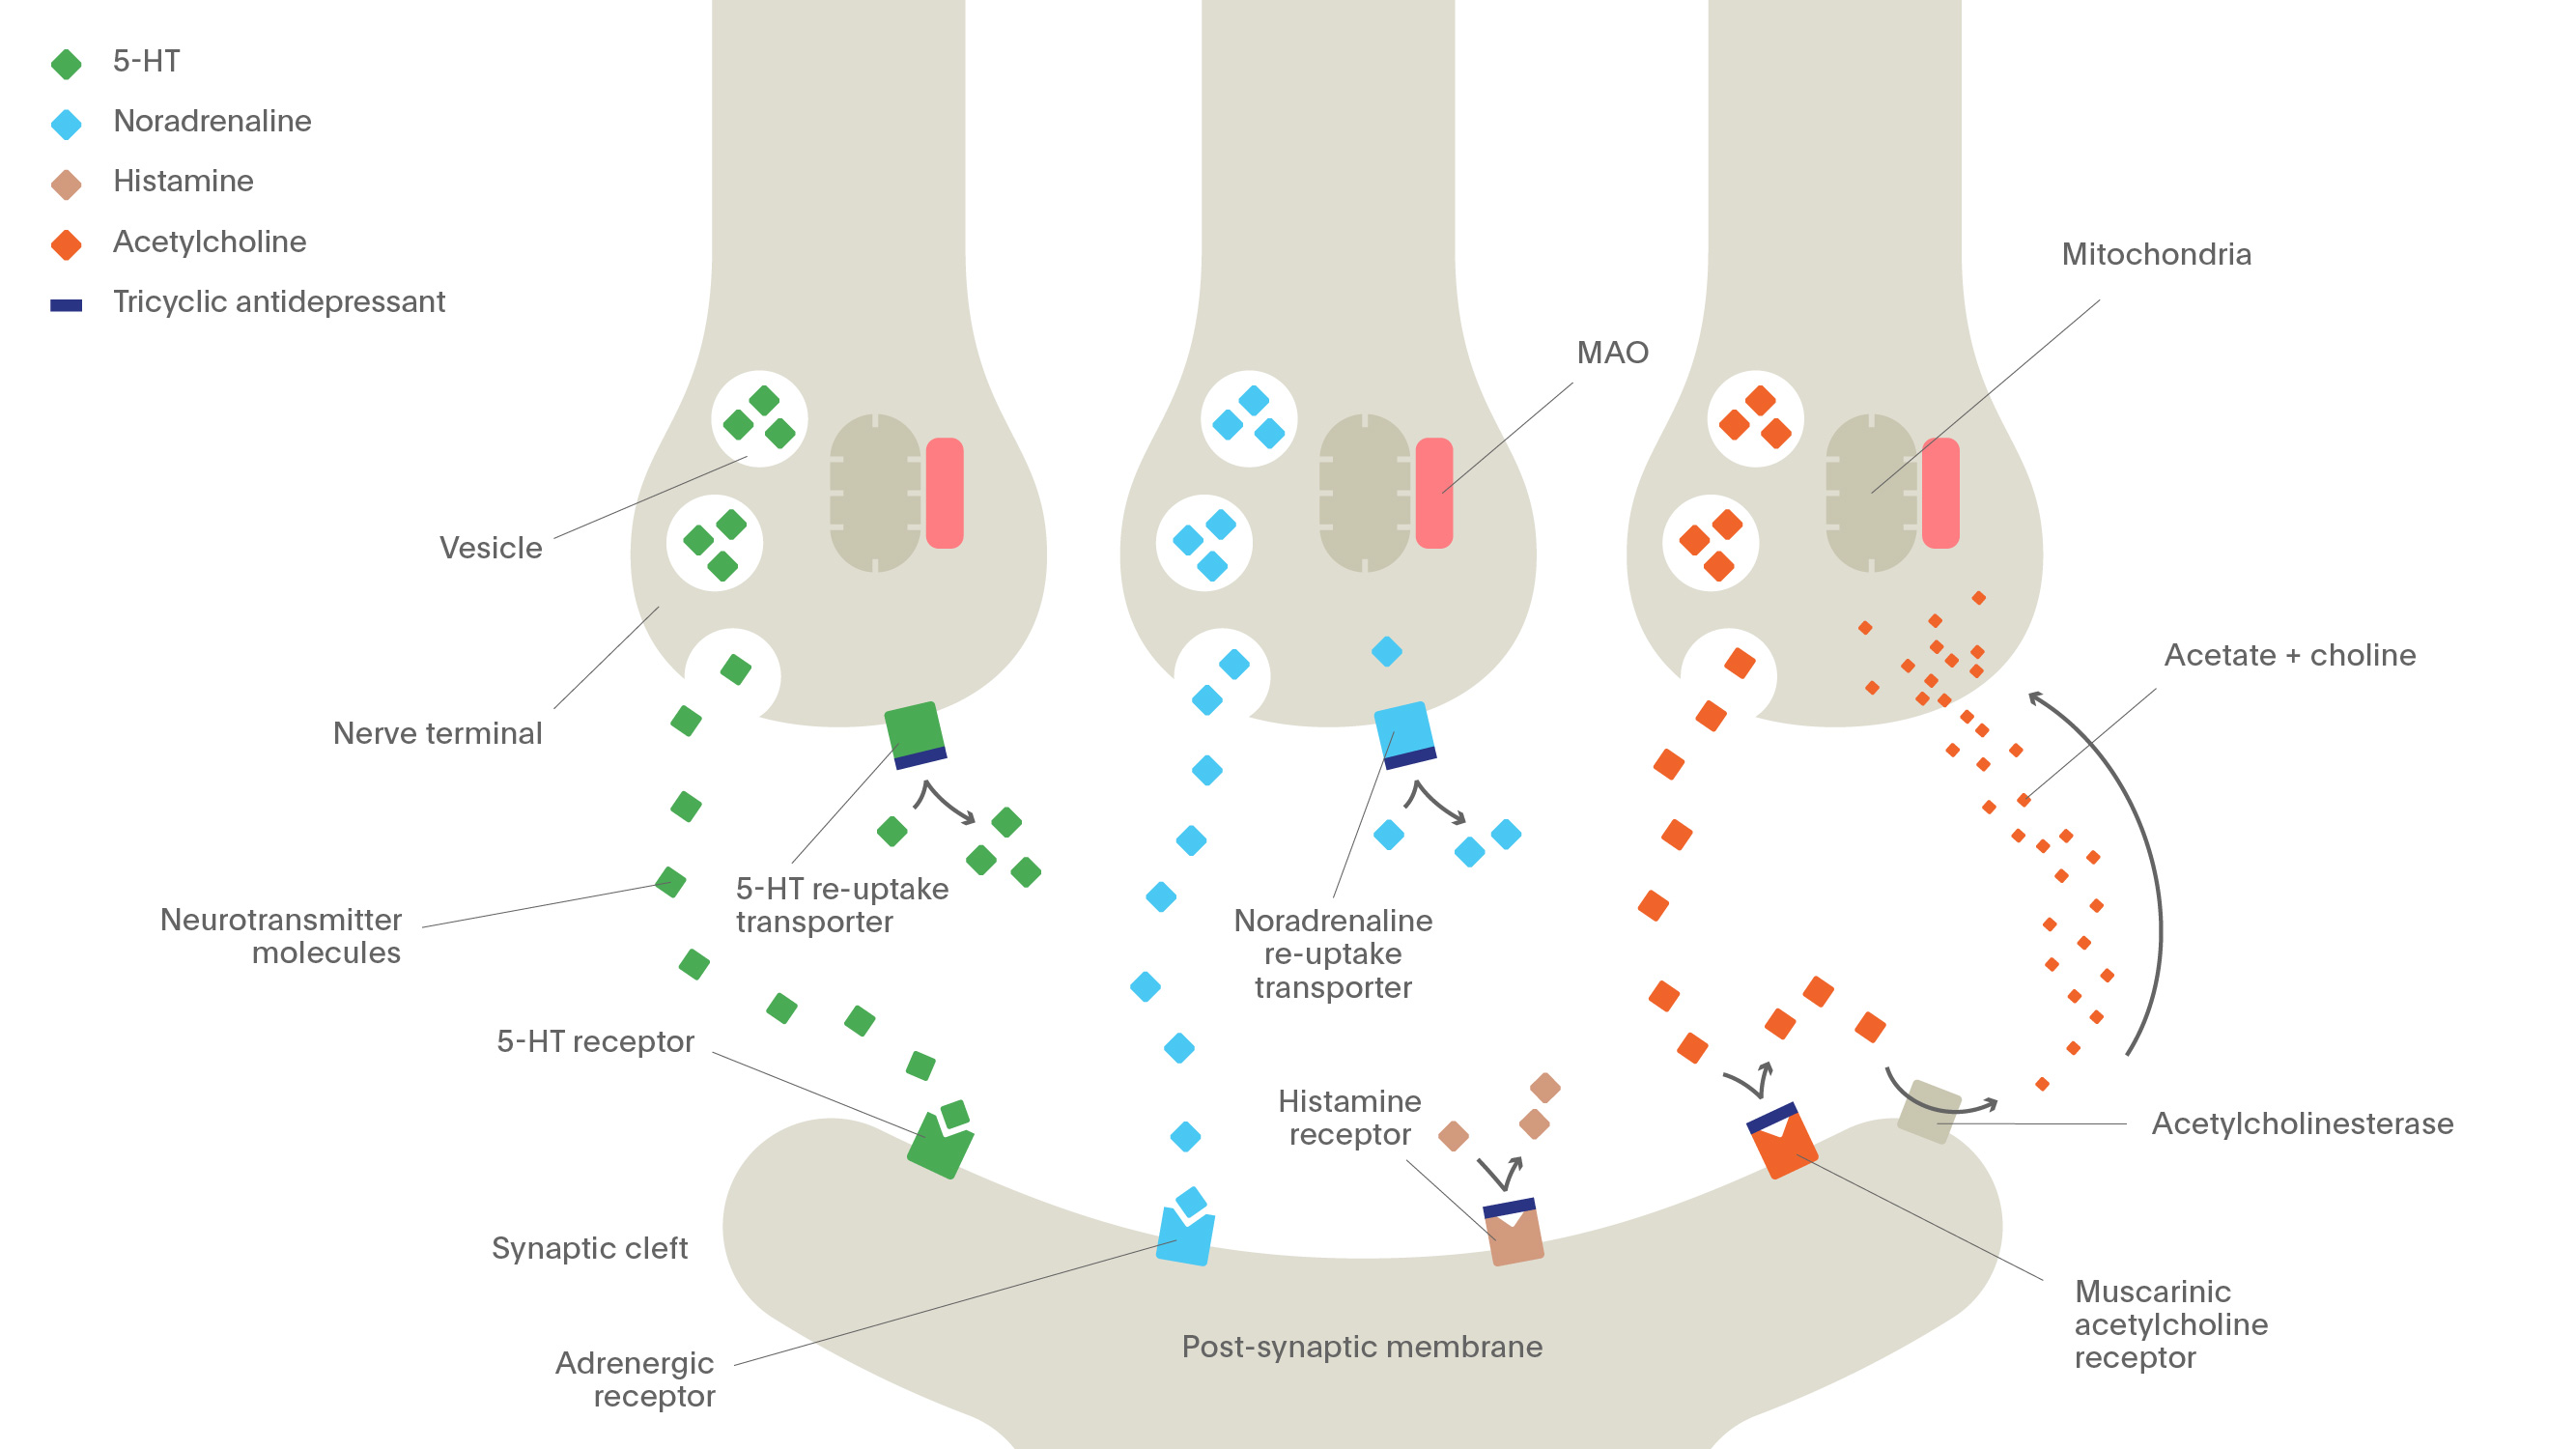 Mechanism of Action of different antidepressants